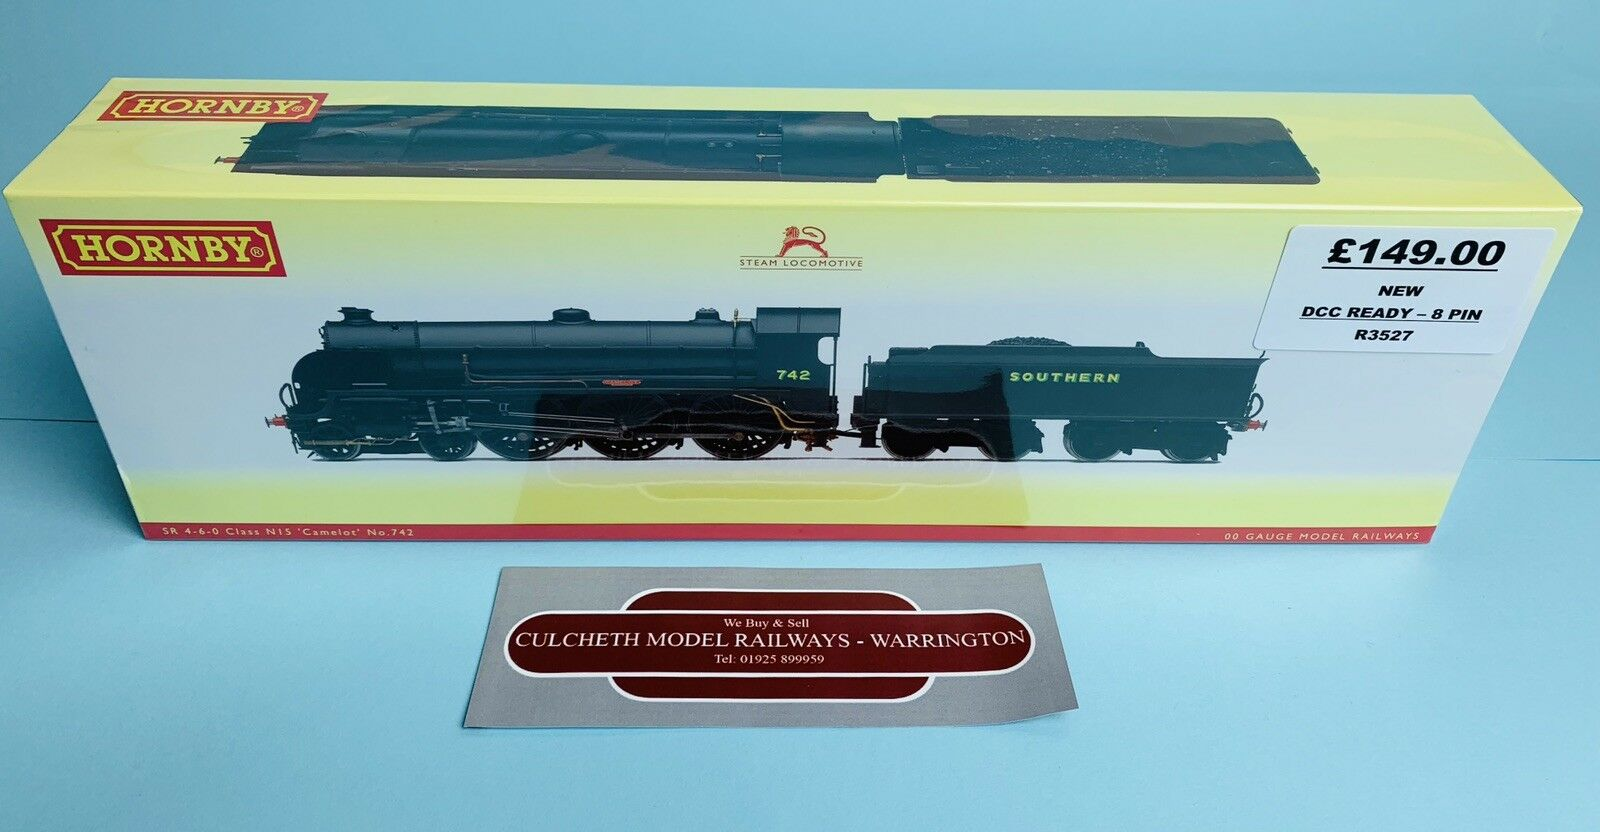 HORNBY 'OO' R3527 SR CLASS N15 'CAMELOT' NO.742 LOCO NEW BOXED